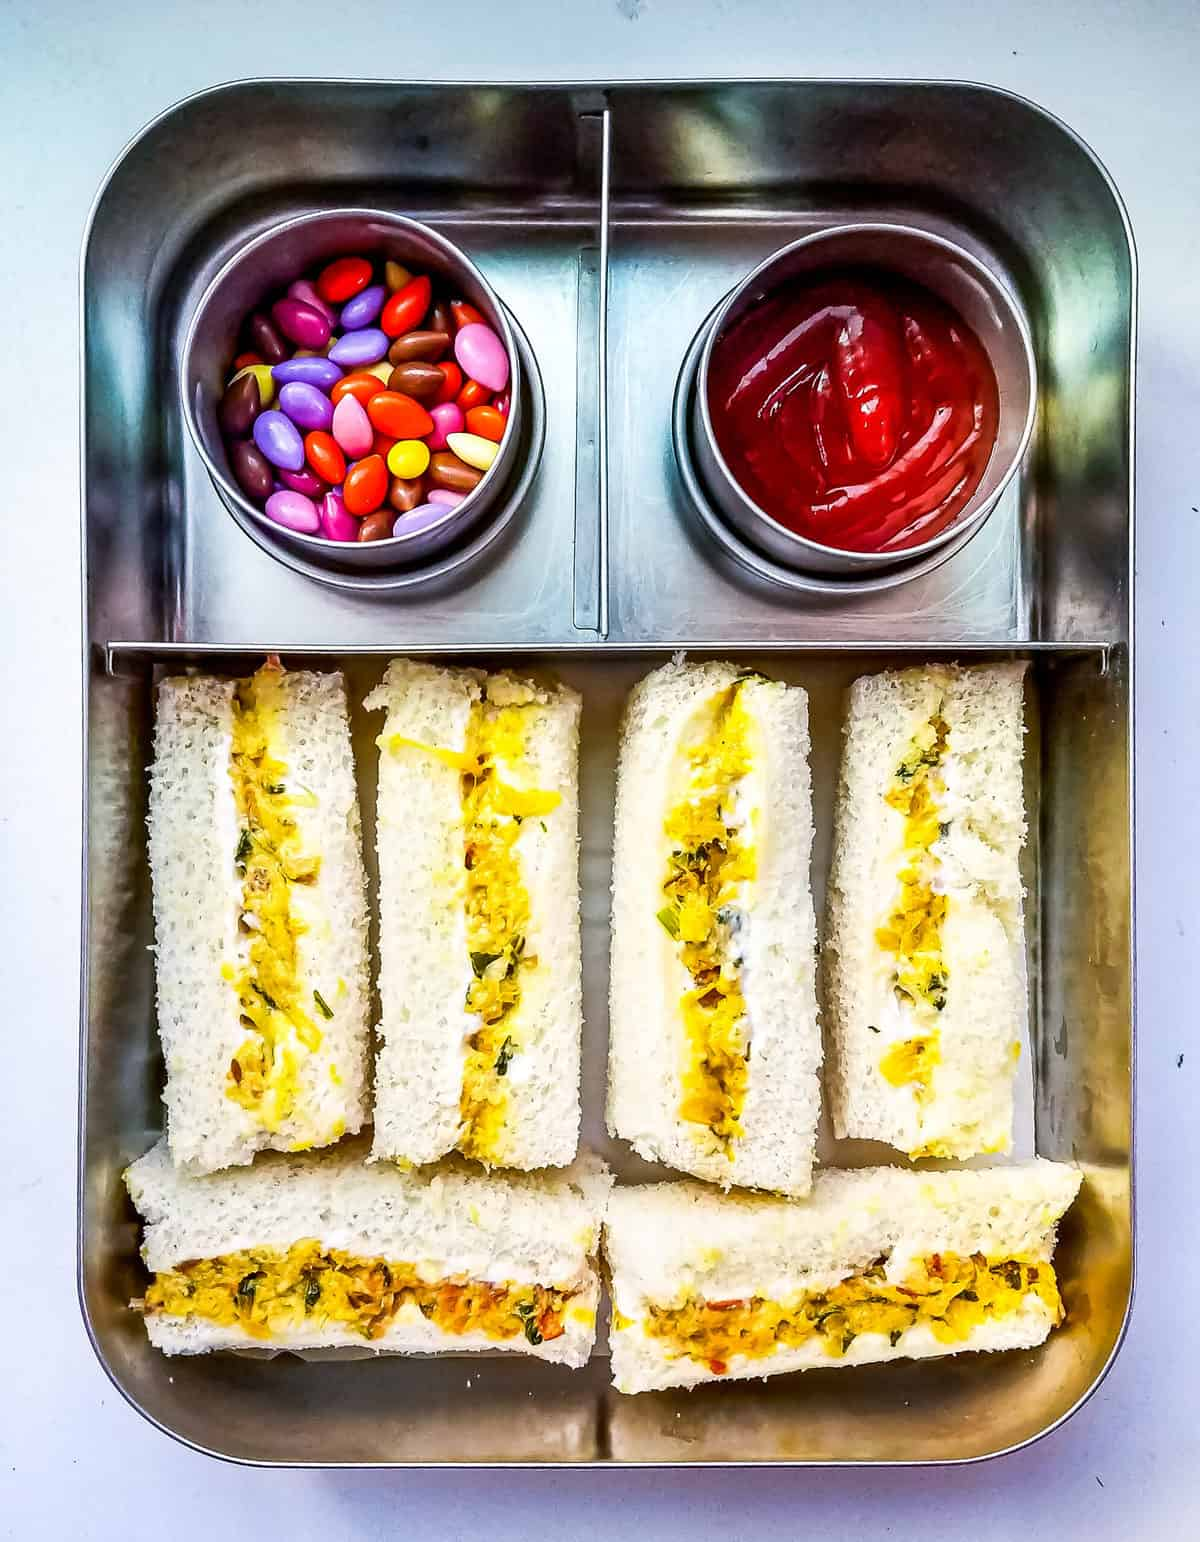 Paneer Bhurji finger sandwiches with ketchup and treat in stainless steel lunchbox